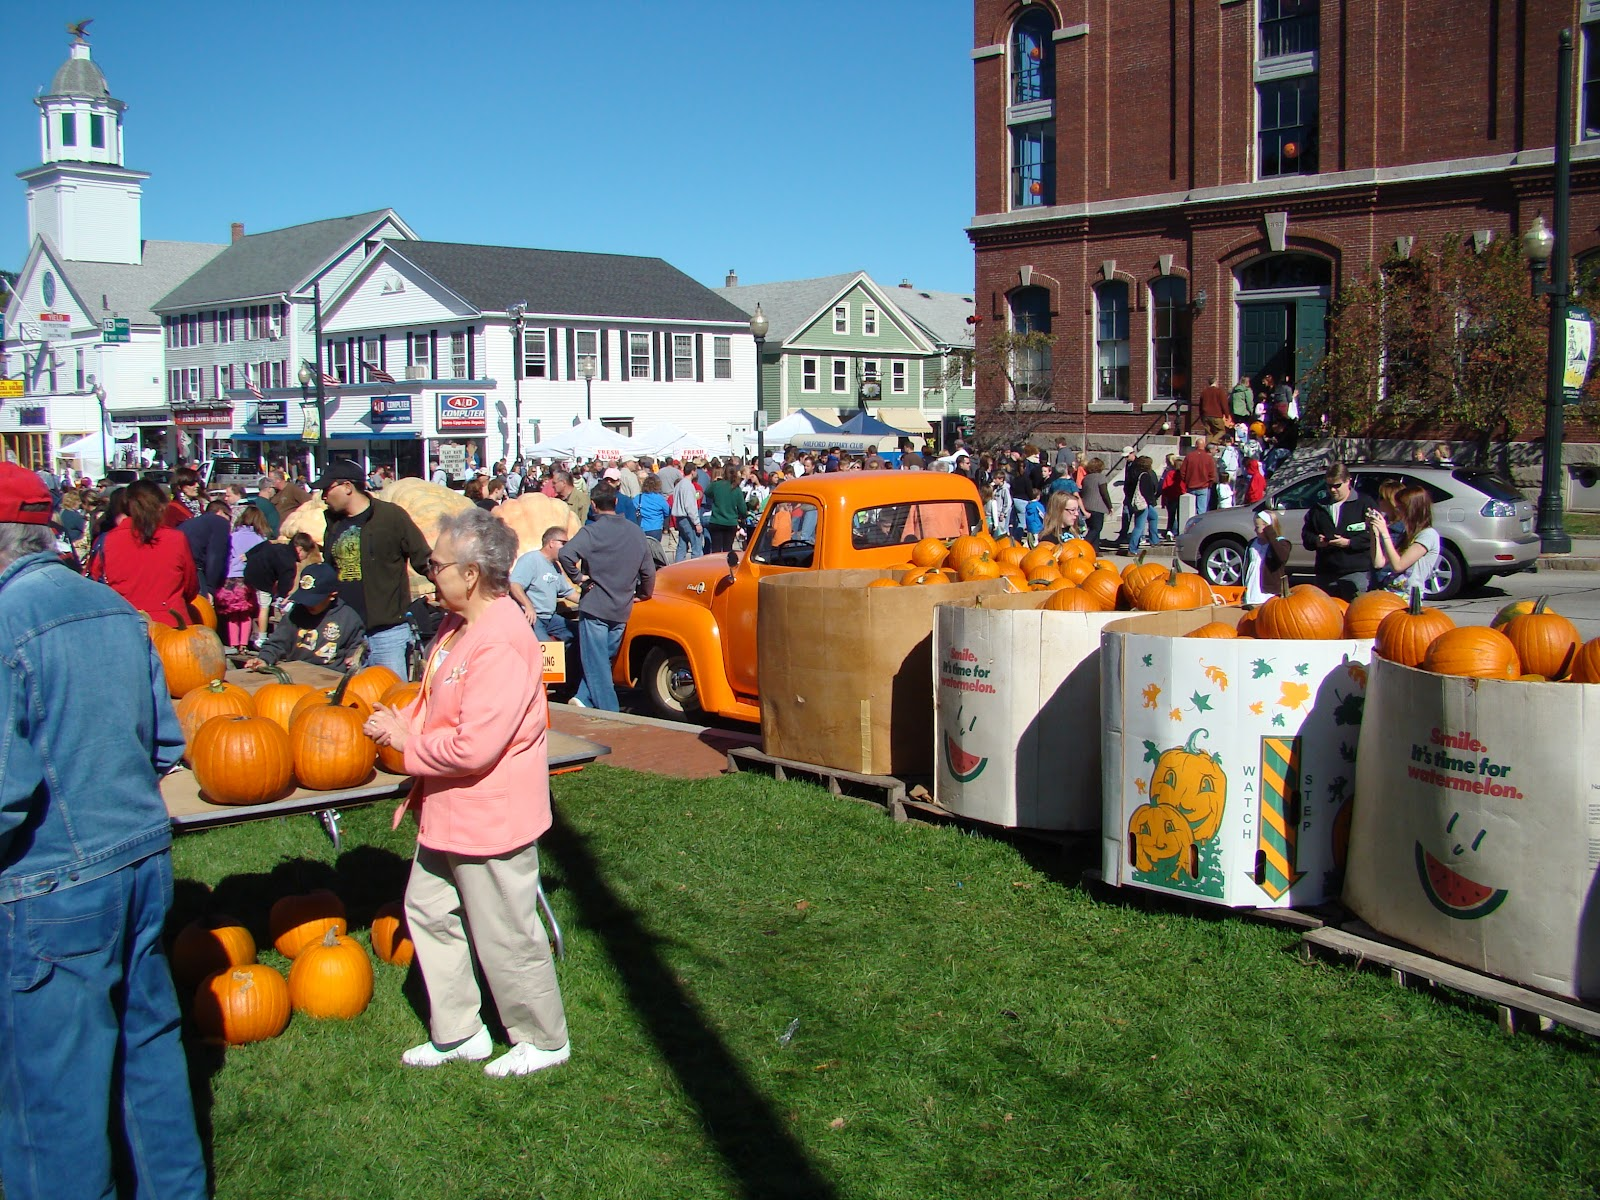 Milford great pumpkin festival